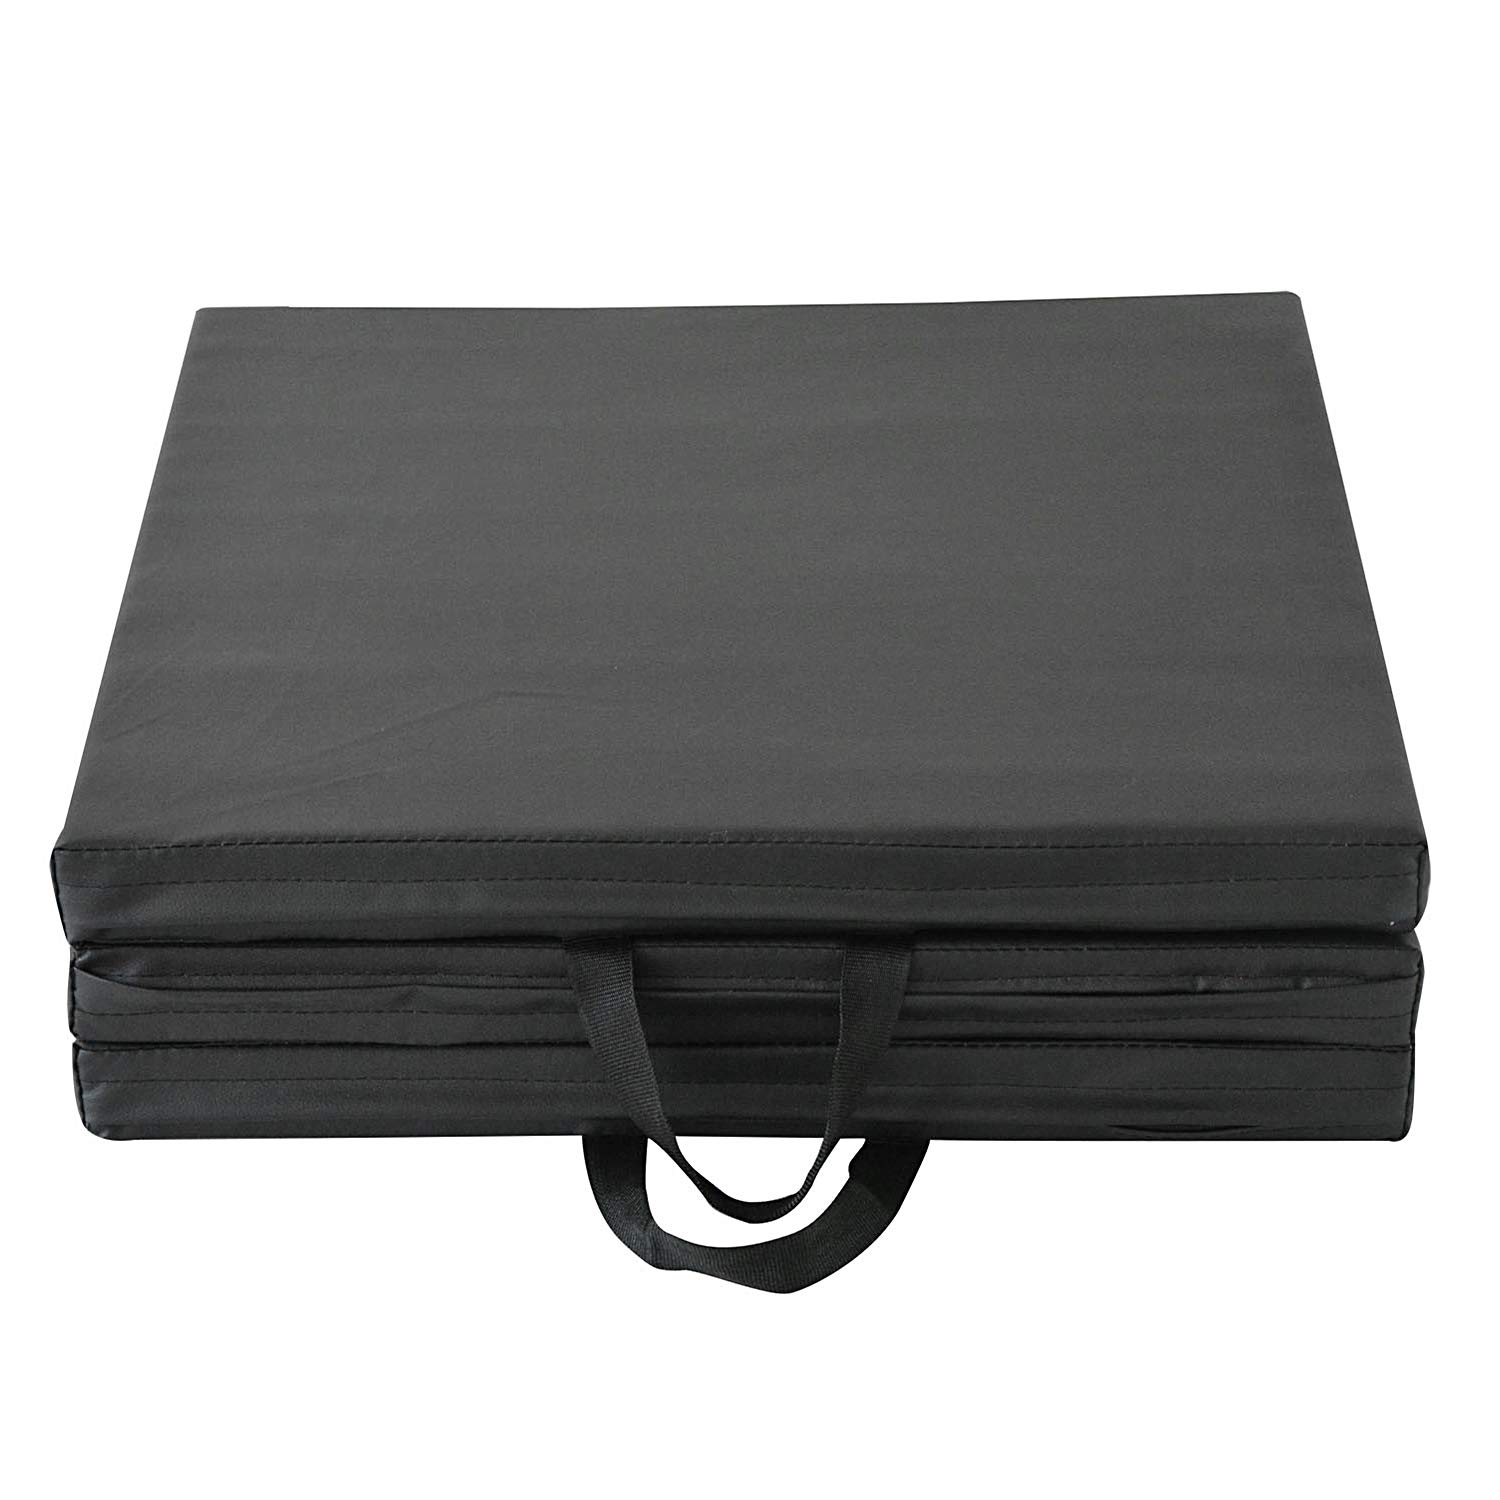 Modern-Depo Gymnastics Mat Tri-Fold 6'X2'X2 Thick with Handle, Waterproof Cover, 100% EPE Core (Black) by Modern-Depo (Image #5)